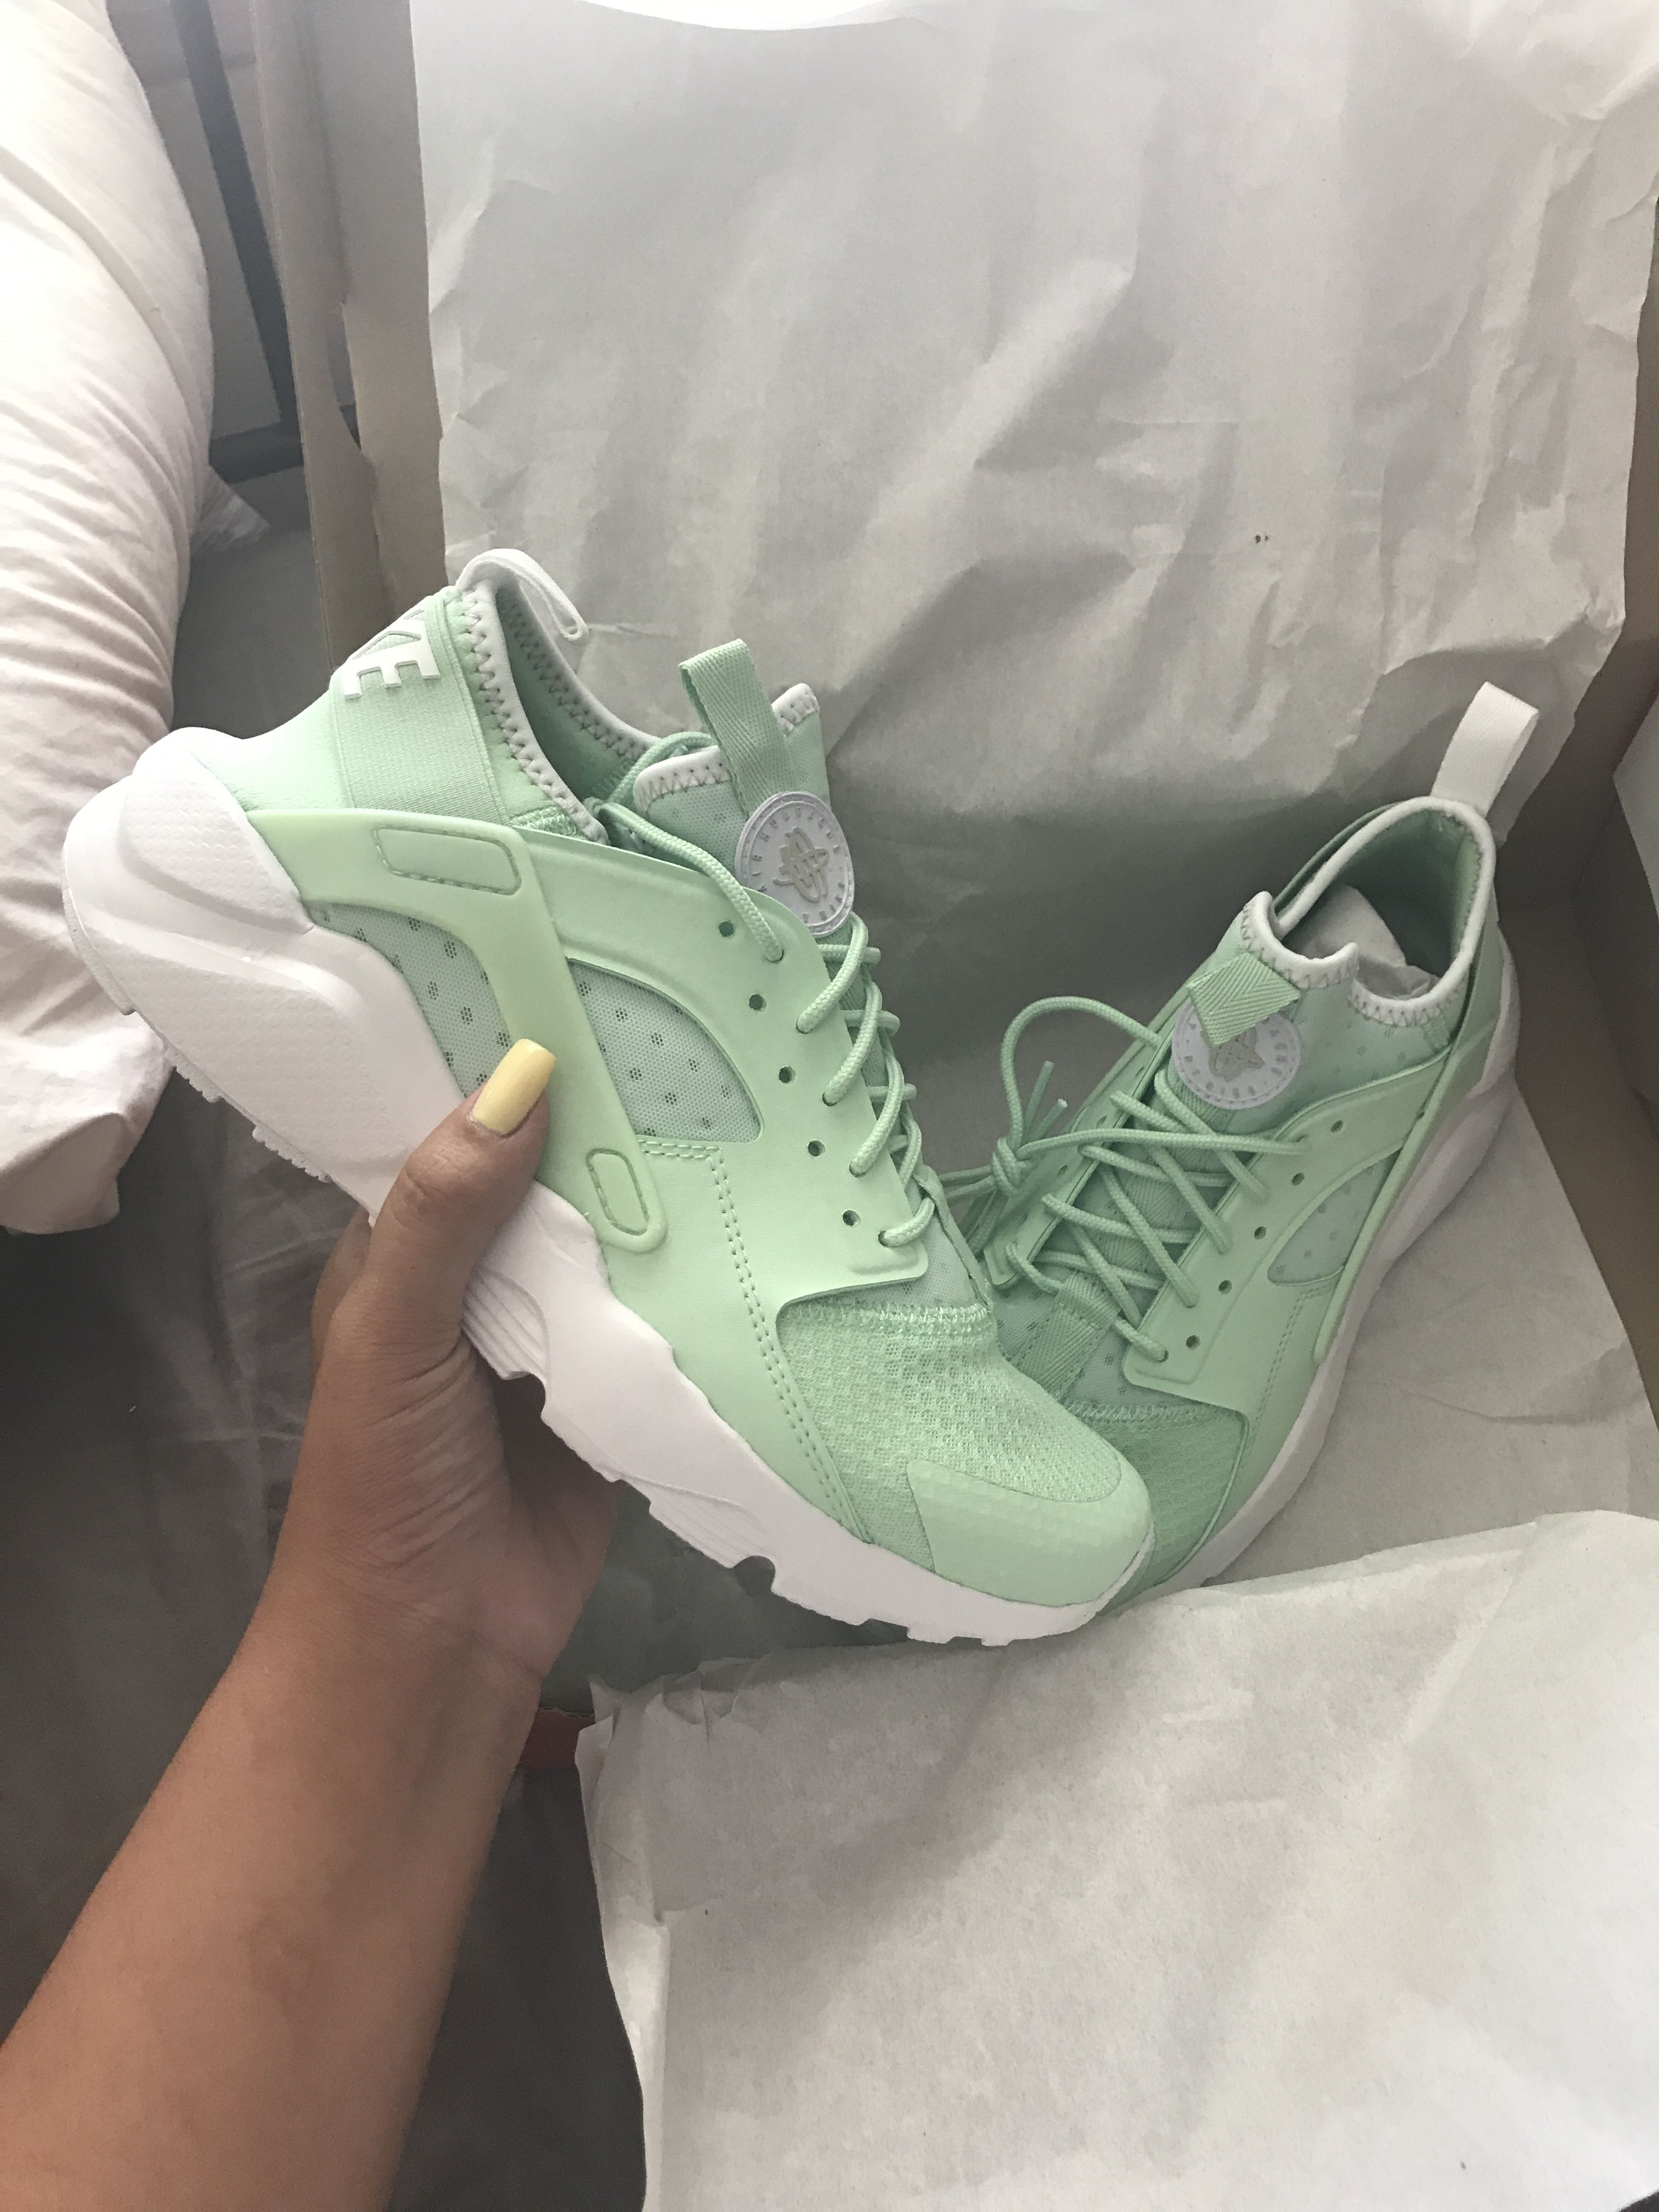 Nike Huarache Mint Green Ohhhhh Yes Please Some Of The Most